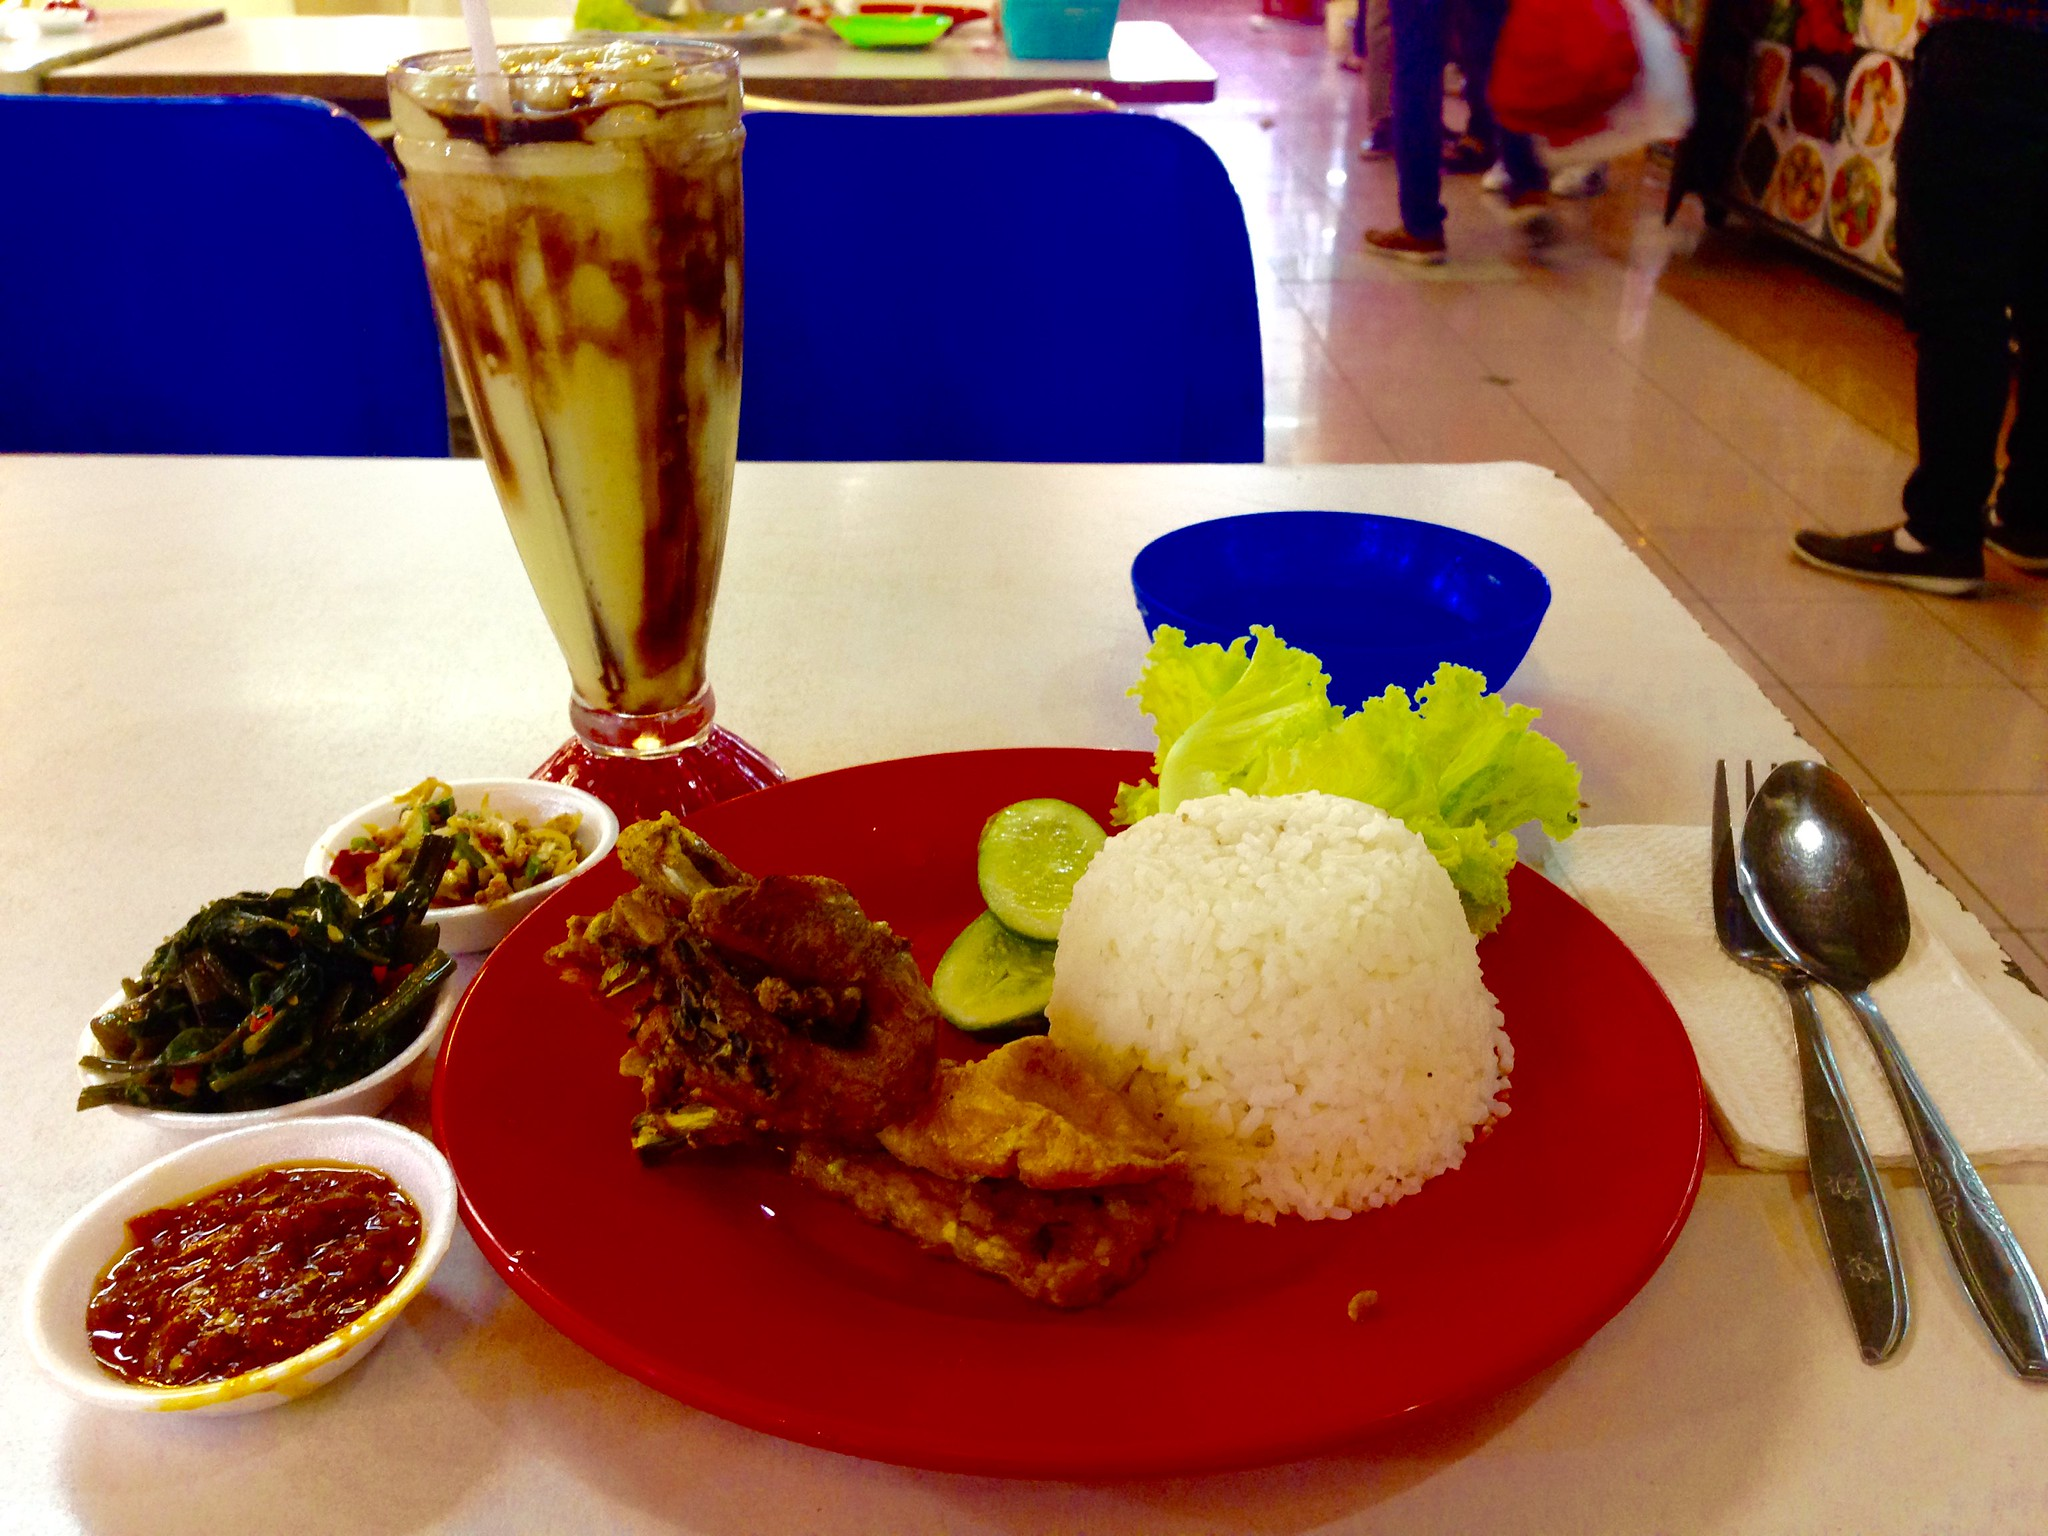 3 USD meal of fried chicken and avocado shake, Bandung